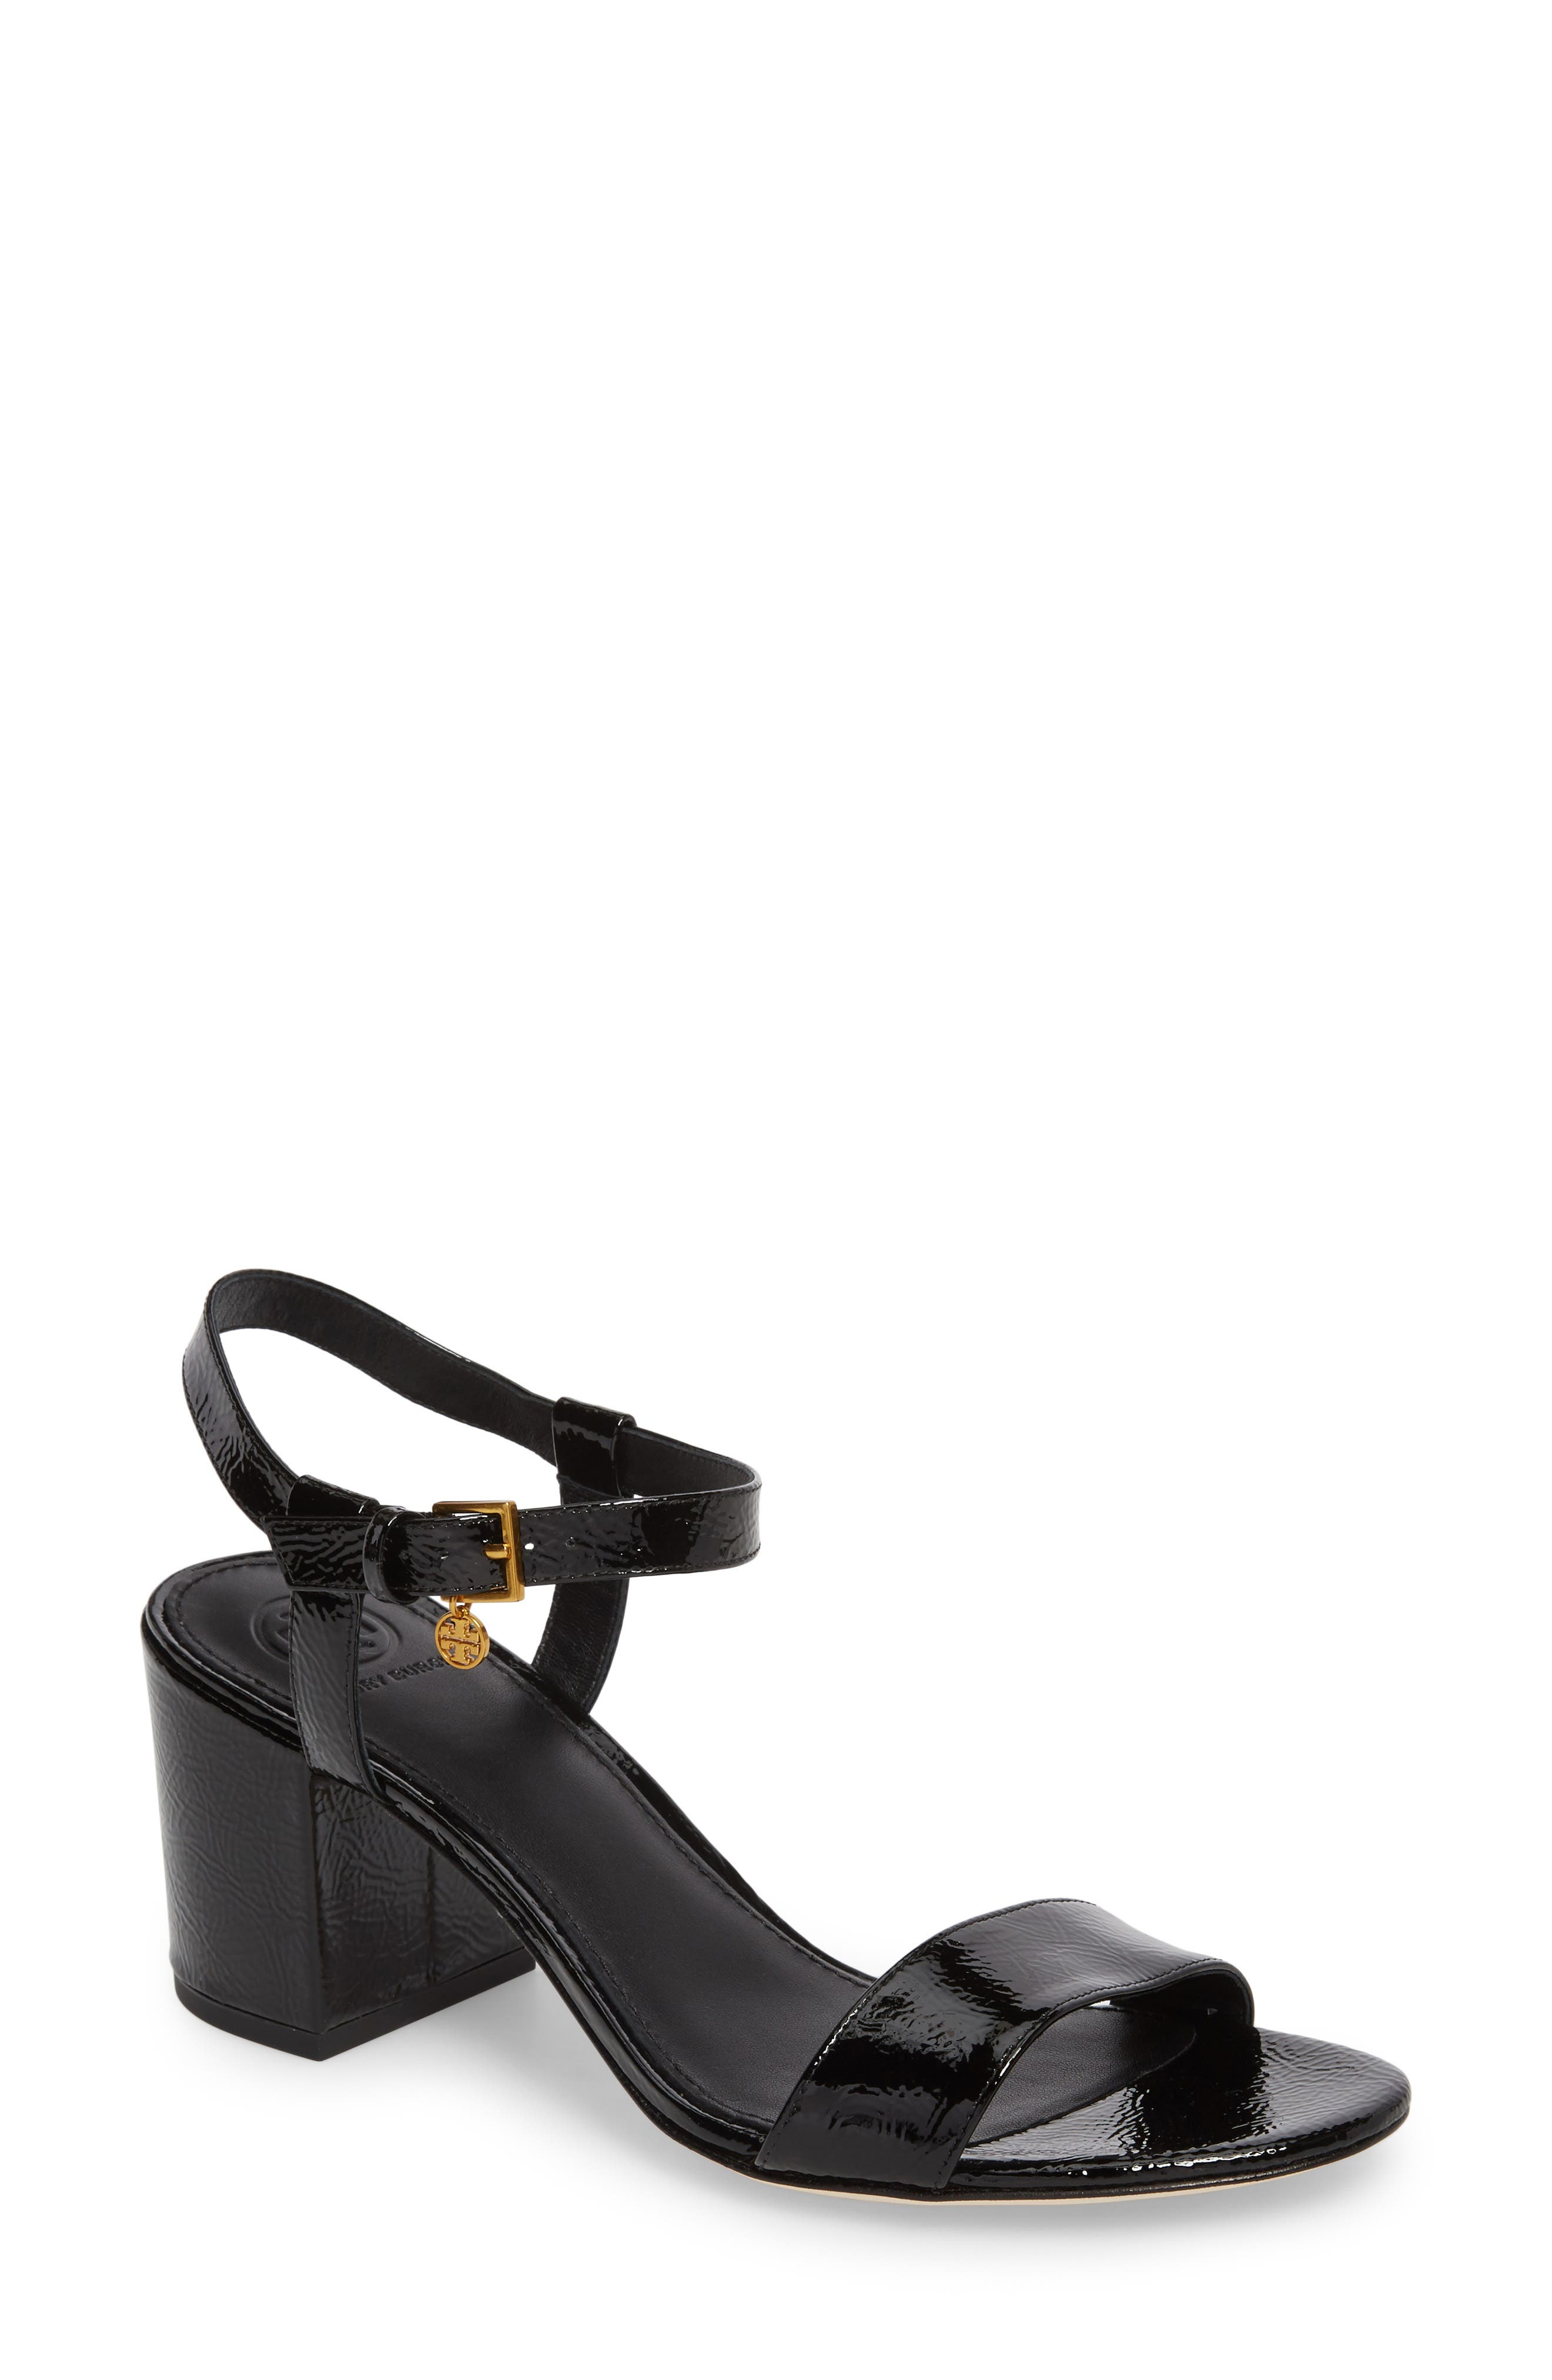 Laurel Ankle Strap Sandal,                             Main thumbnail 1, color,                             BLACK